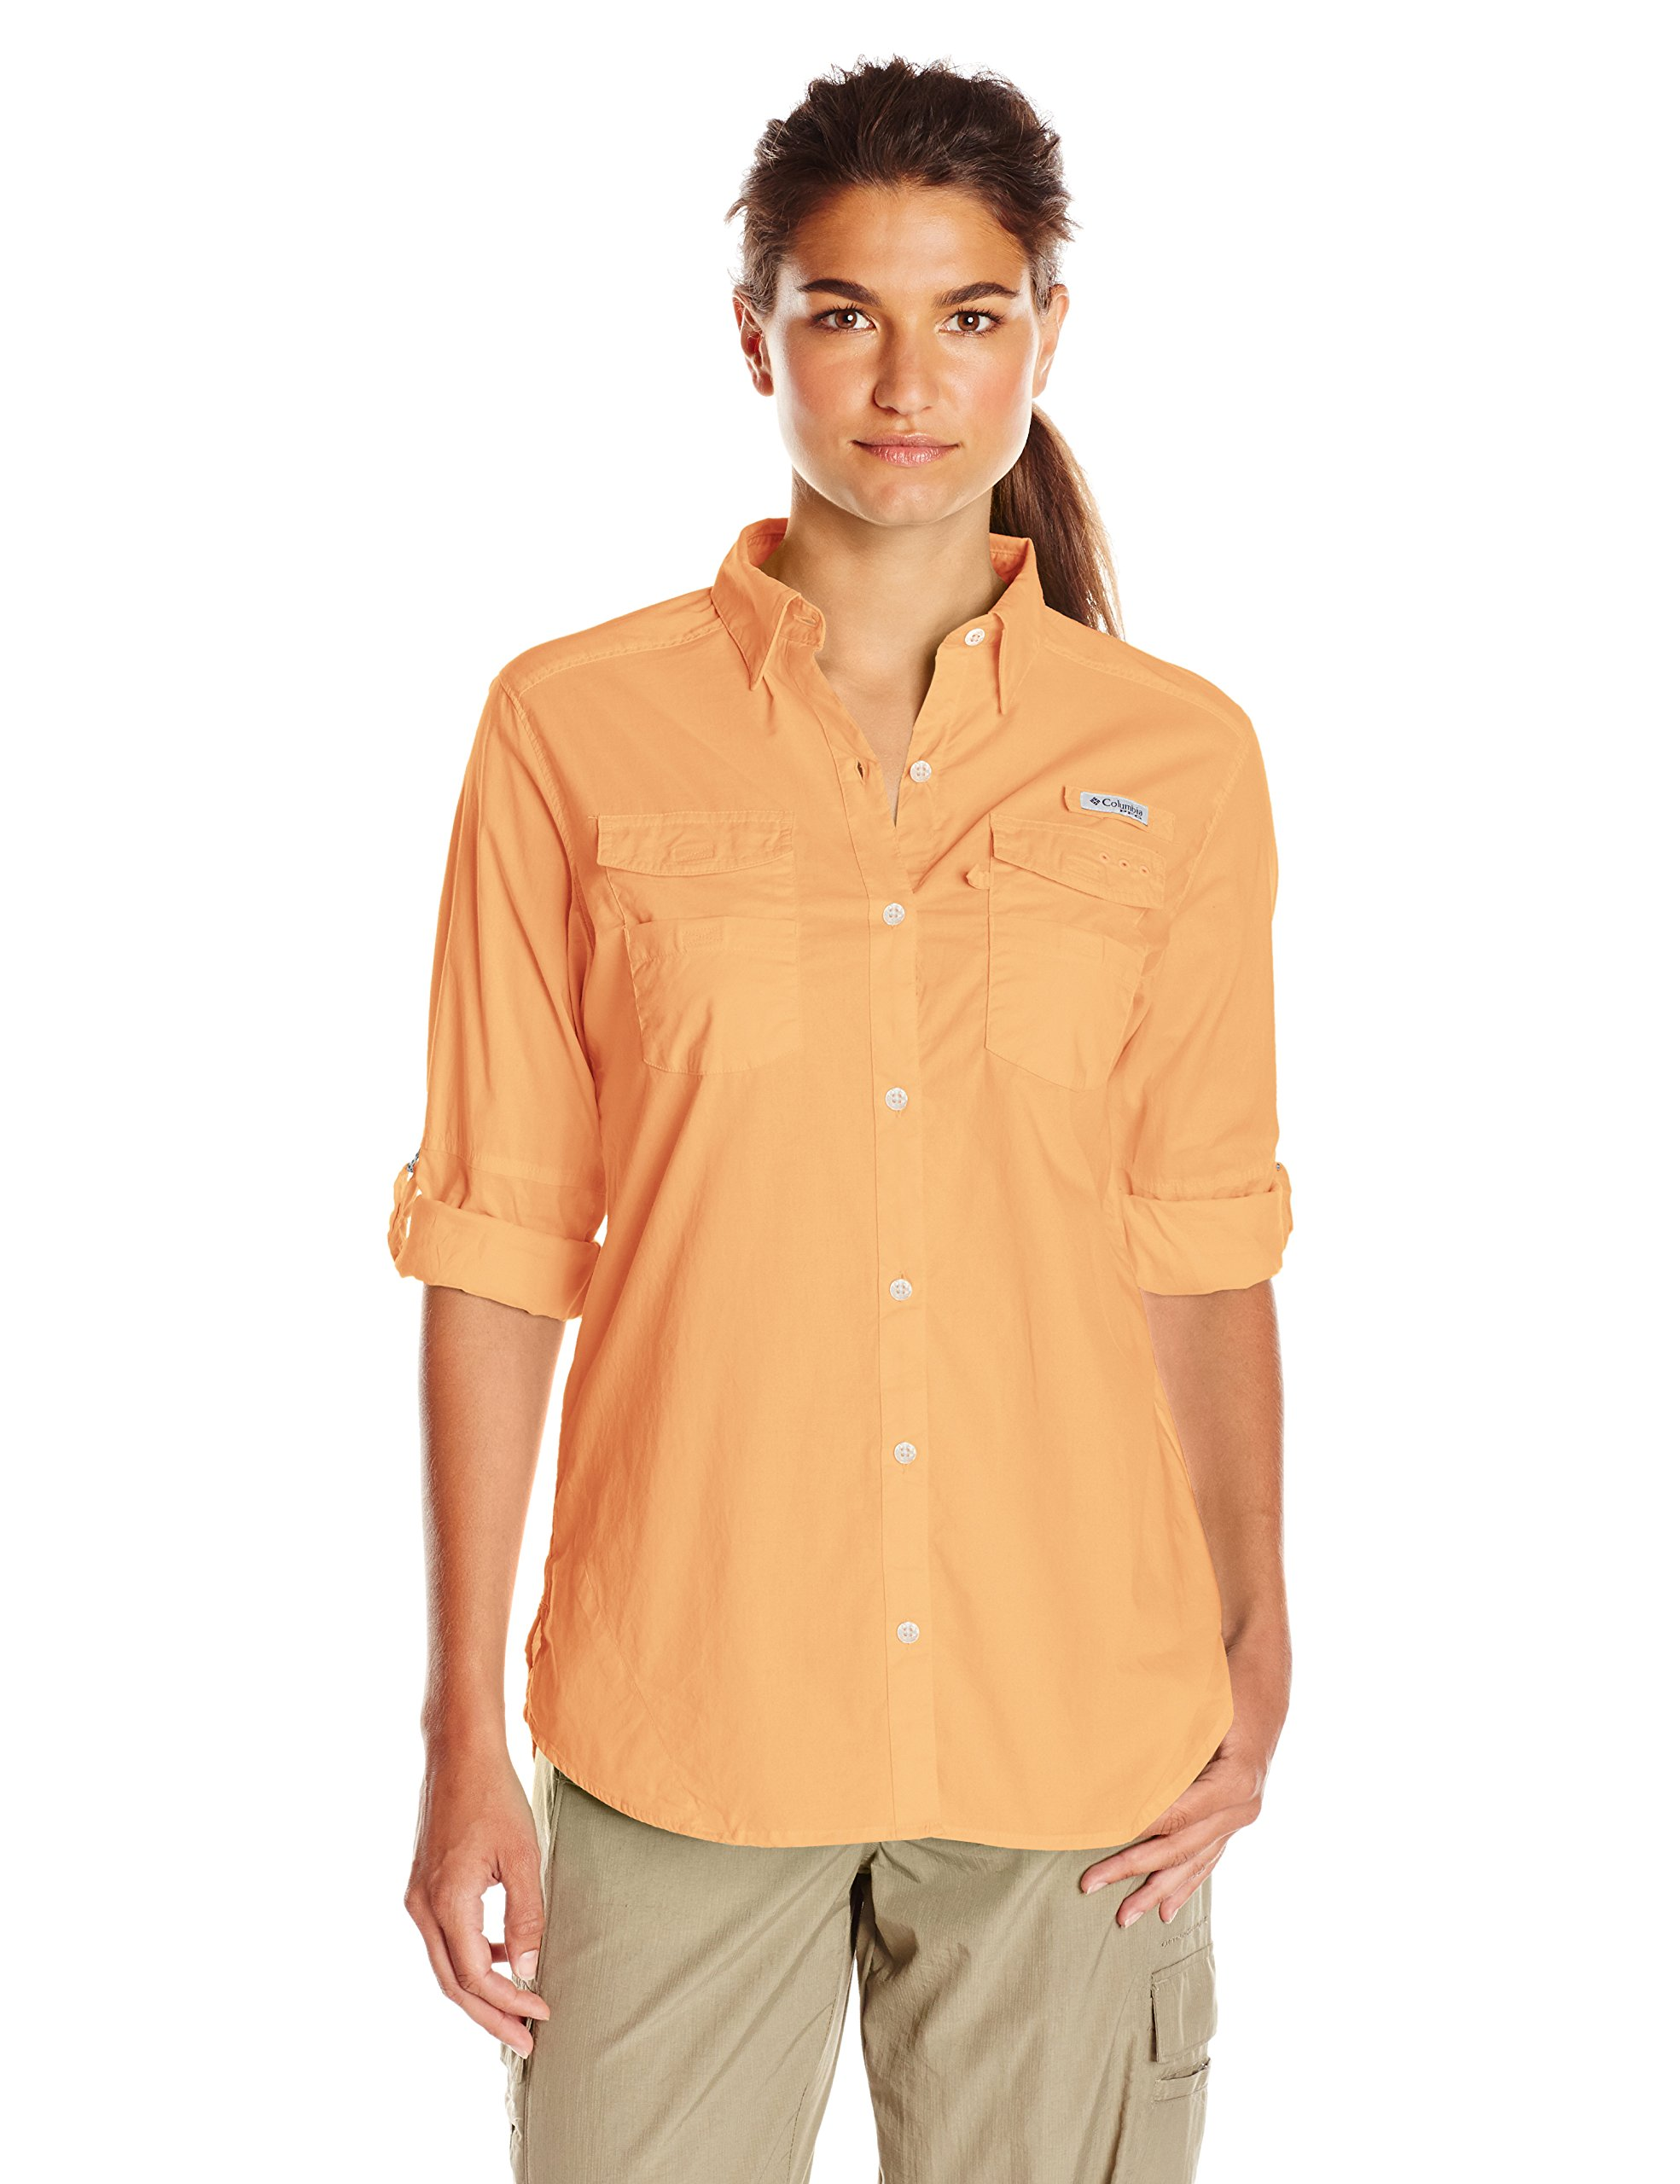 Columbia Women's Bonehead II Long Sleeve Shirt, Light Juice, X-Small by Columbia